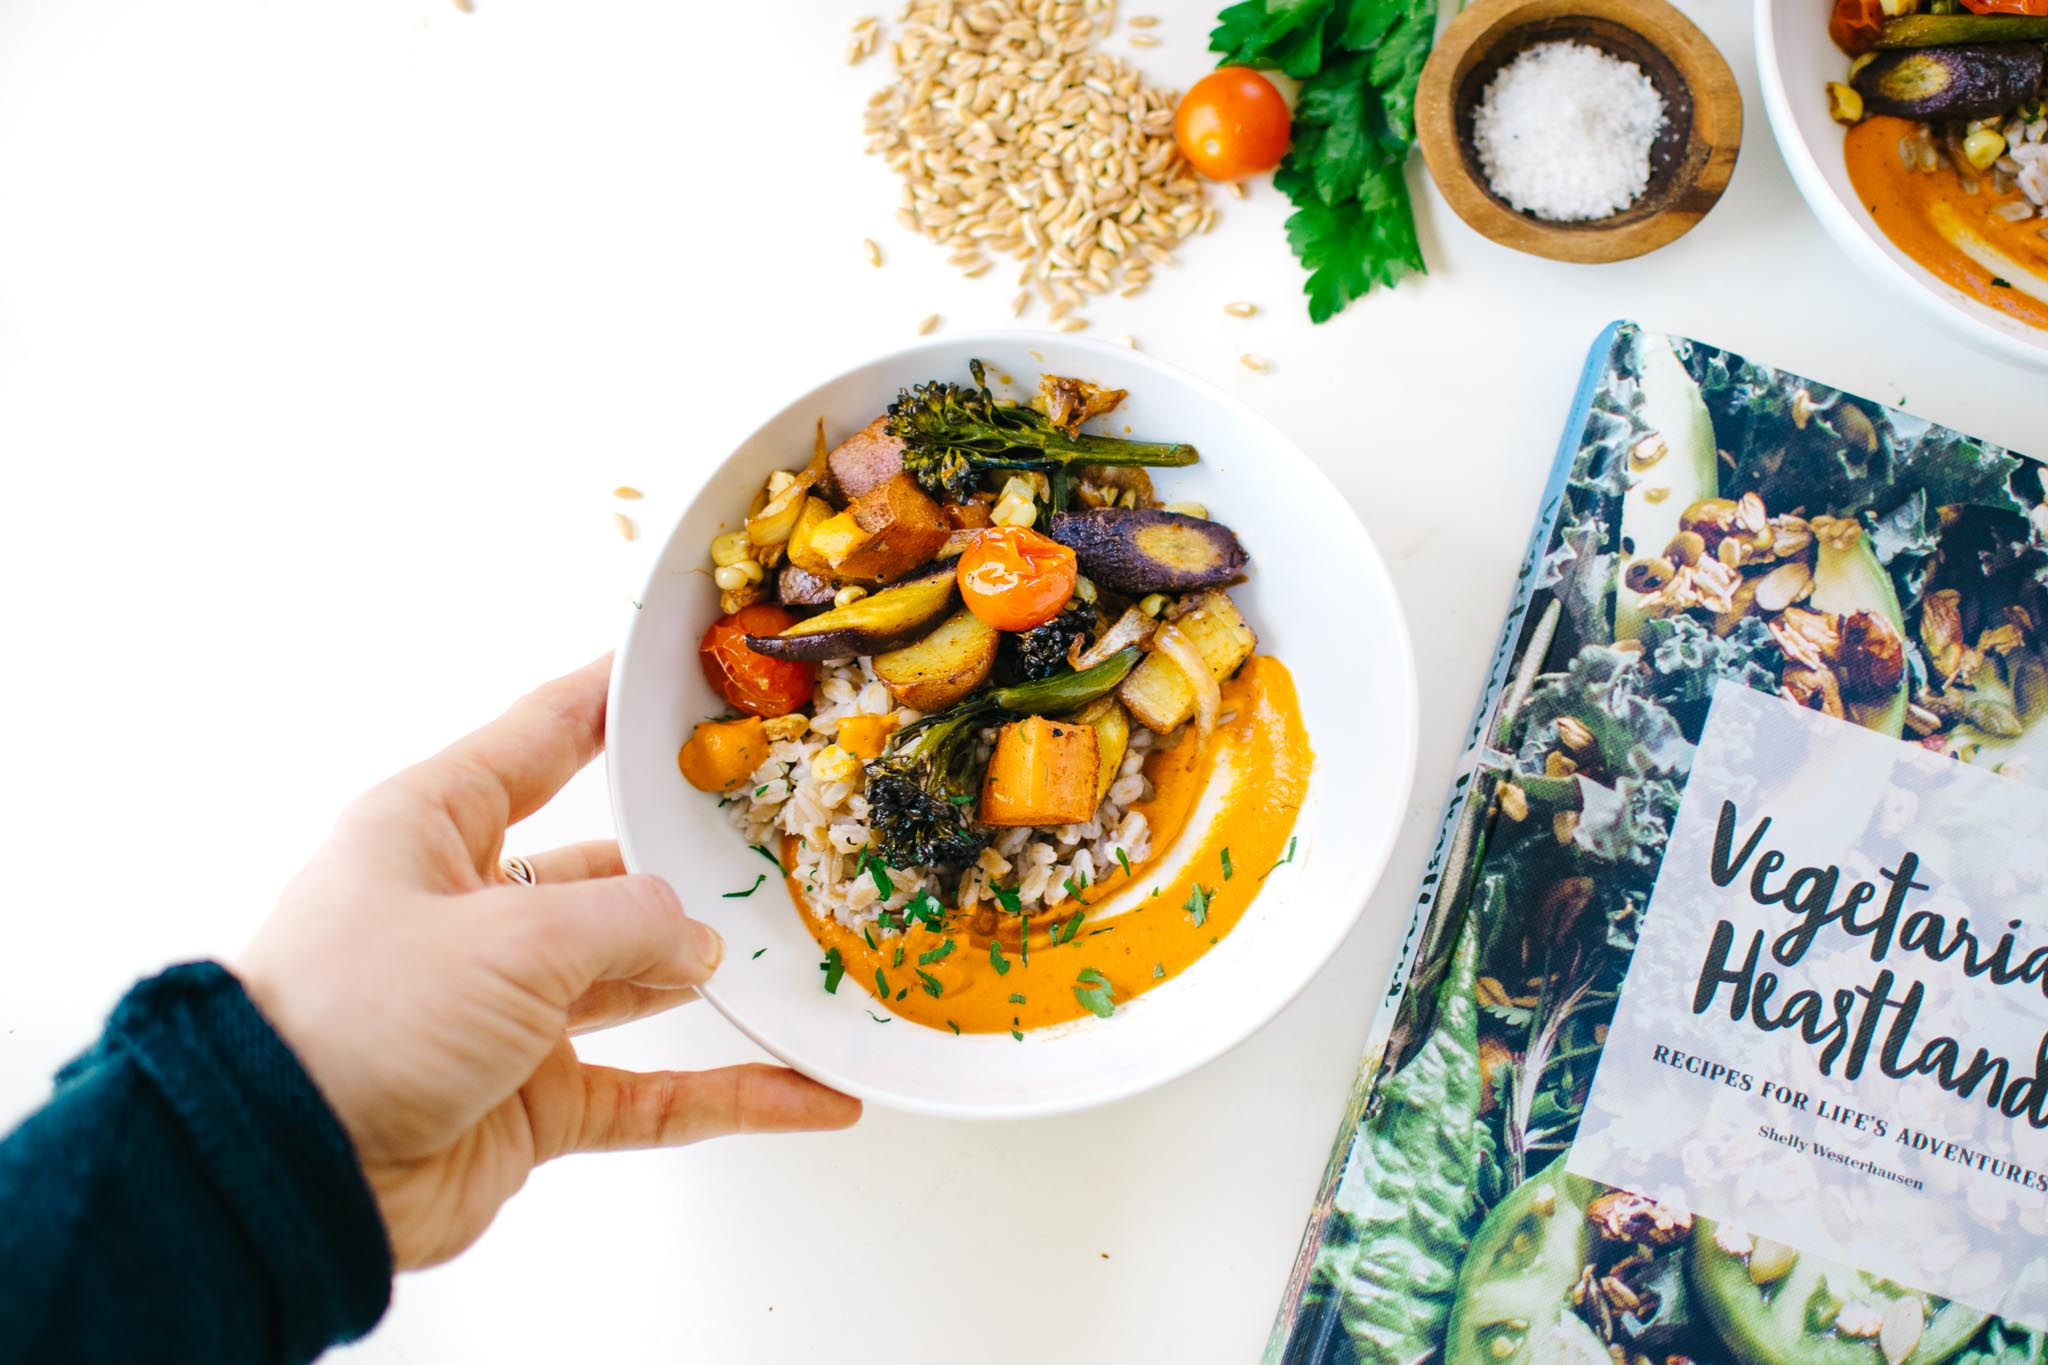 Roasted Vegetables with Creamy Romesco & Farro from Vegetarian Heartland